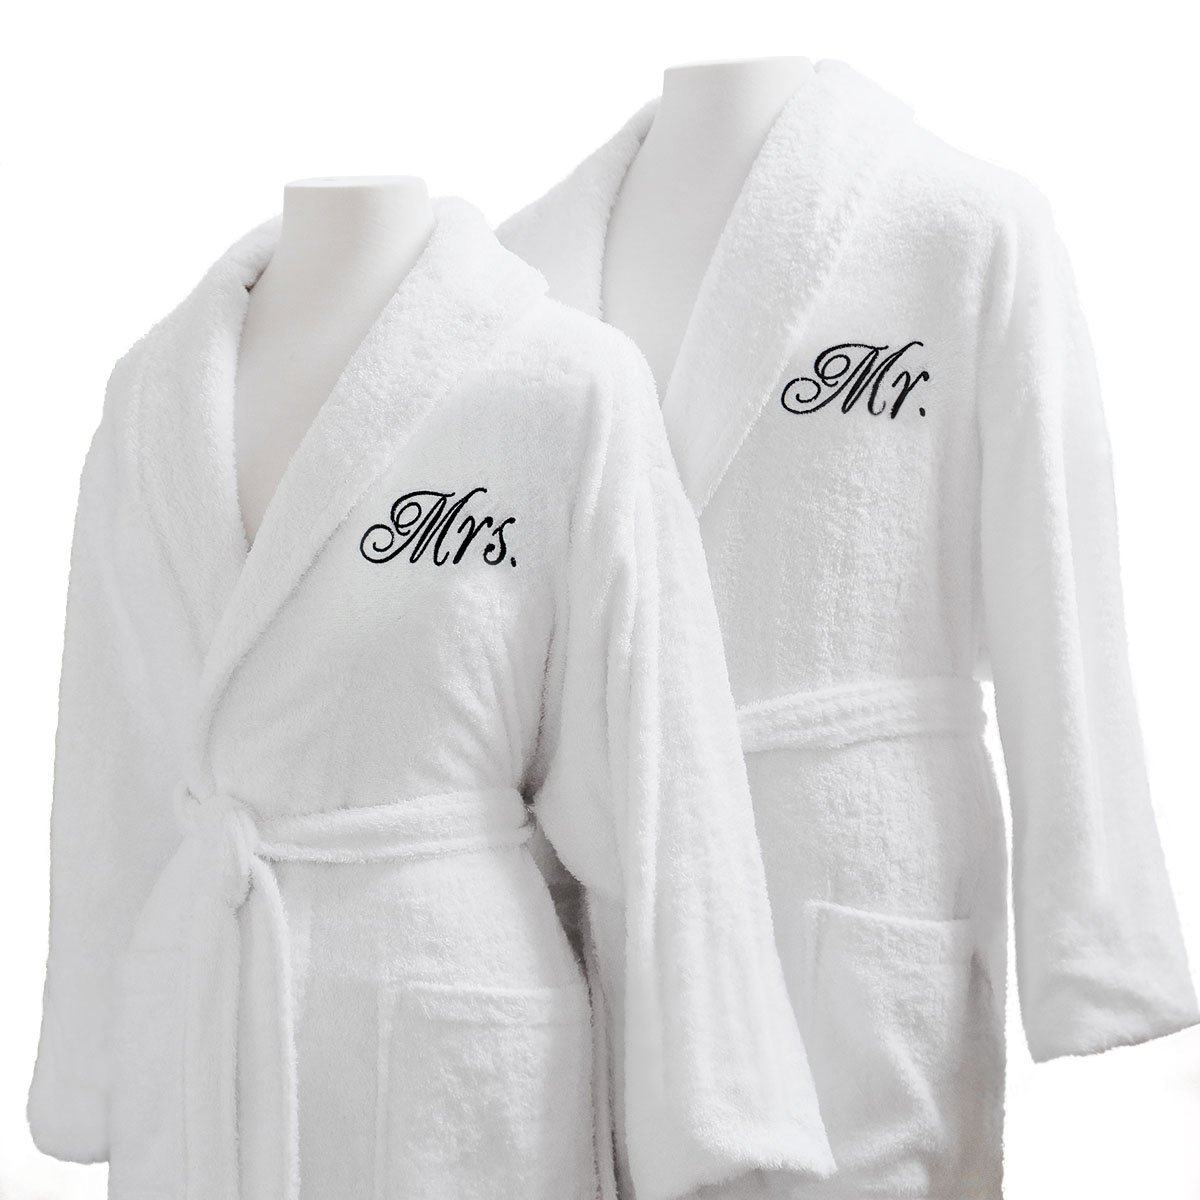 Luxor Linens - Terry Cloth Bathrobes - 100% Egyptian Cotton Mr.& Mrs. Bathrobe Set - Luxurious, Soft, Plush Durable Set of Robes